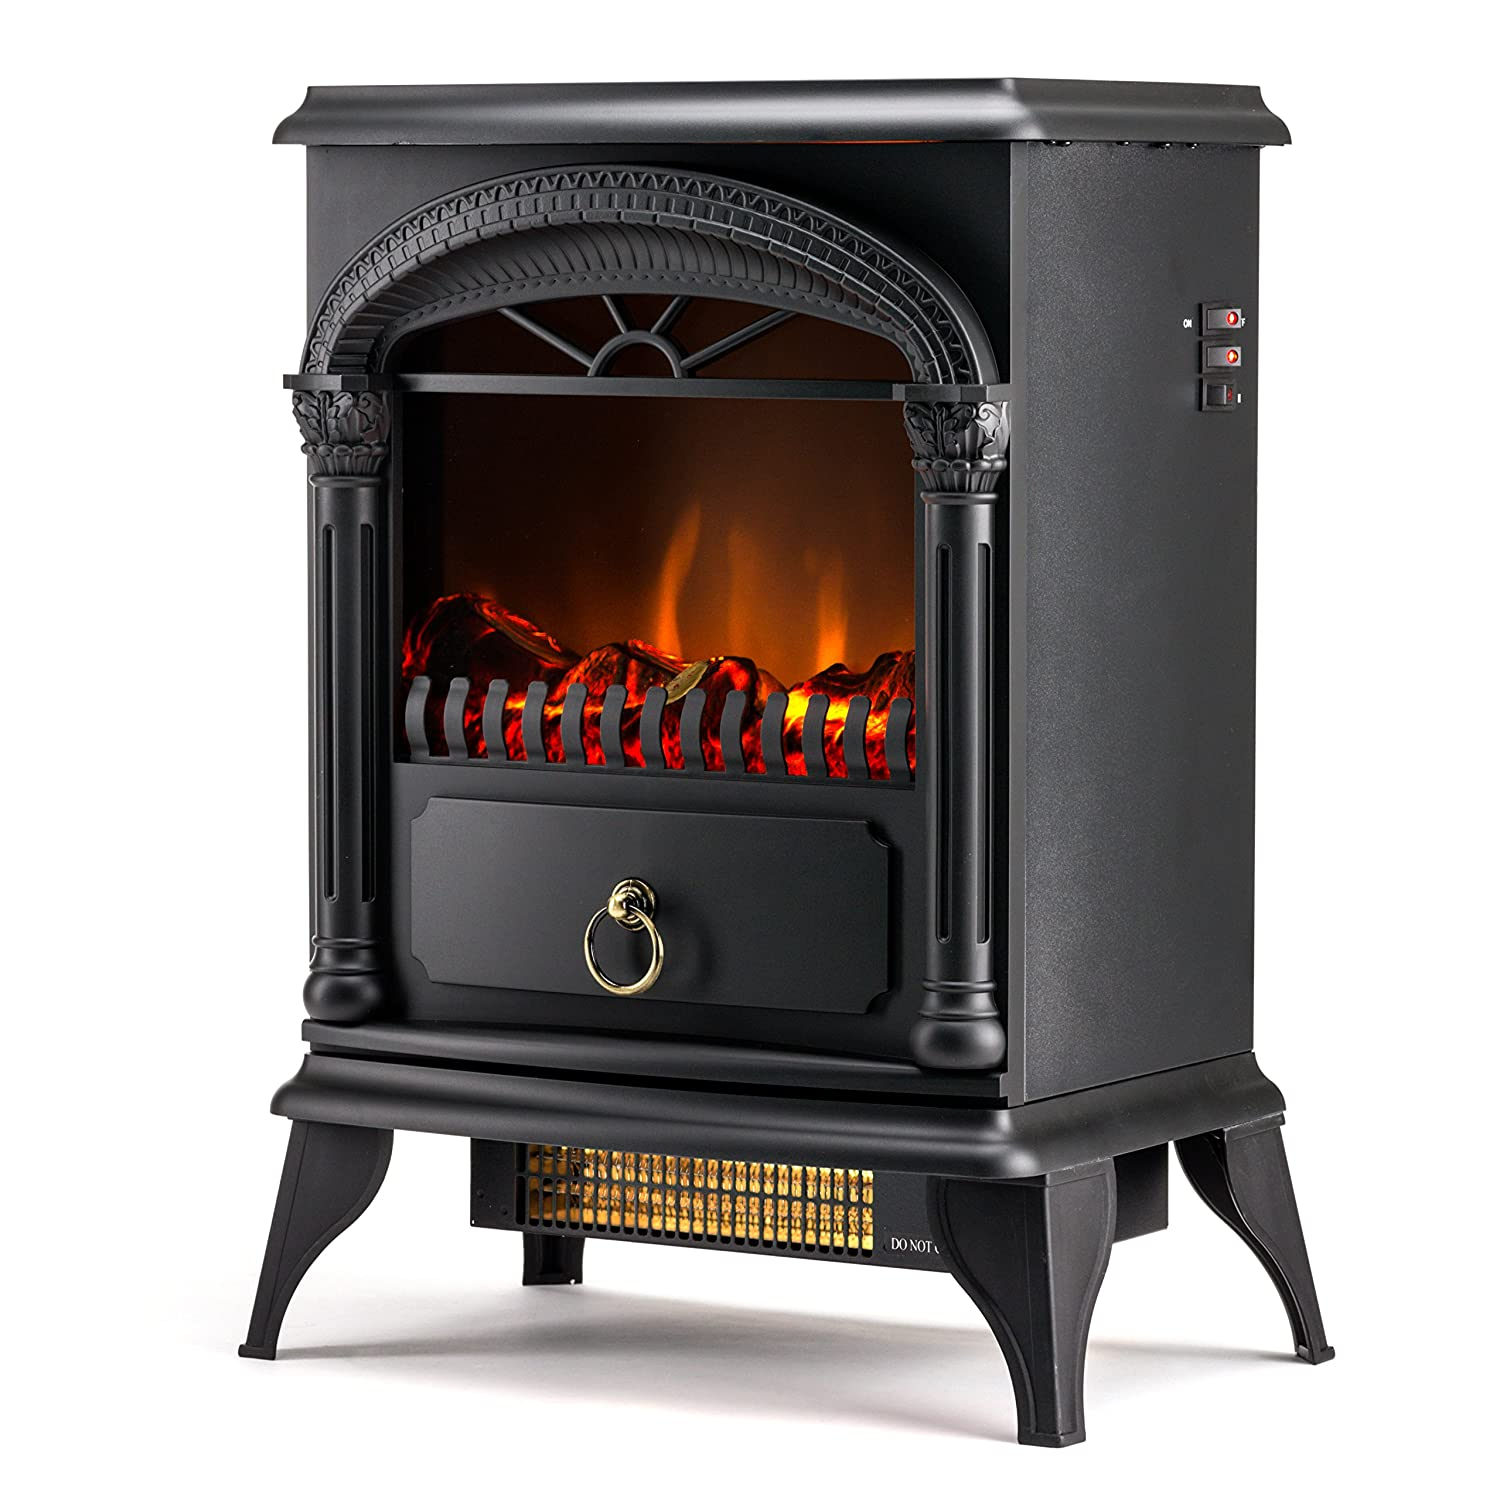 Large 1500w heat adjustable electric portable fireplace Heating large spaces